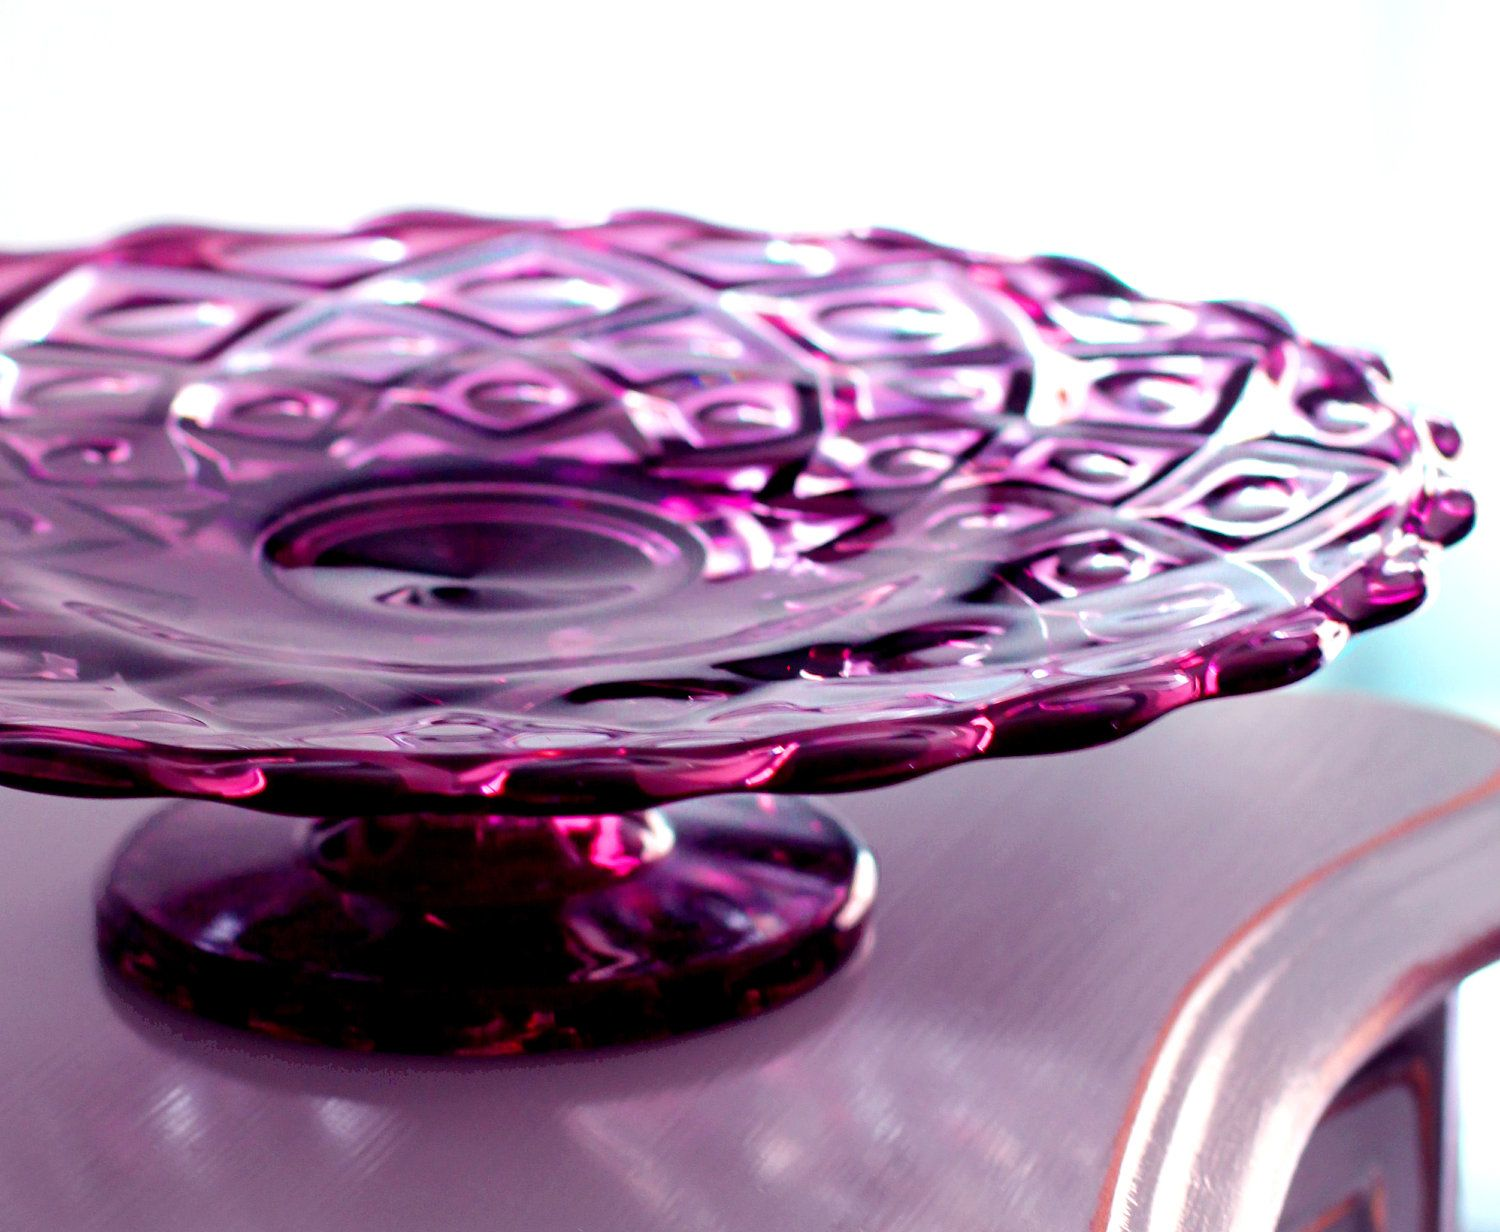 Thanksgiving Vintage Cake Stand in Amethyst Purple Plum / Cake Plate Pie Pedestal / Truffle Stand / Hors d\u0027oeuvre Platter / Appetizer Tray.  sc 1 st  Pinterest & Thanksgiving Vintage Cake Stand in Amethyst Purple Plum / Cake Plate ...